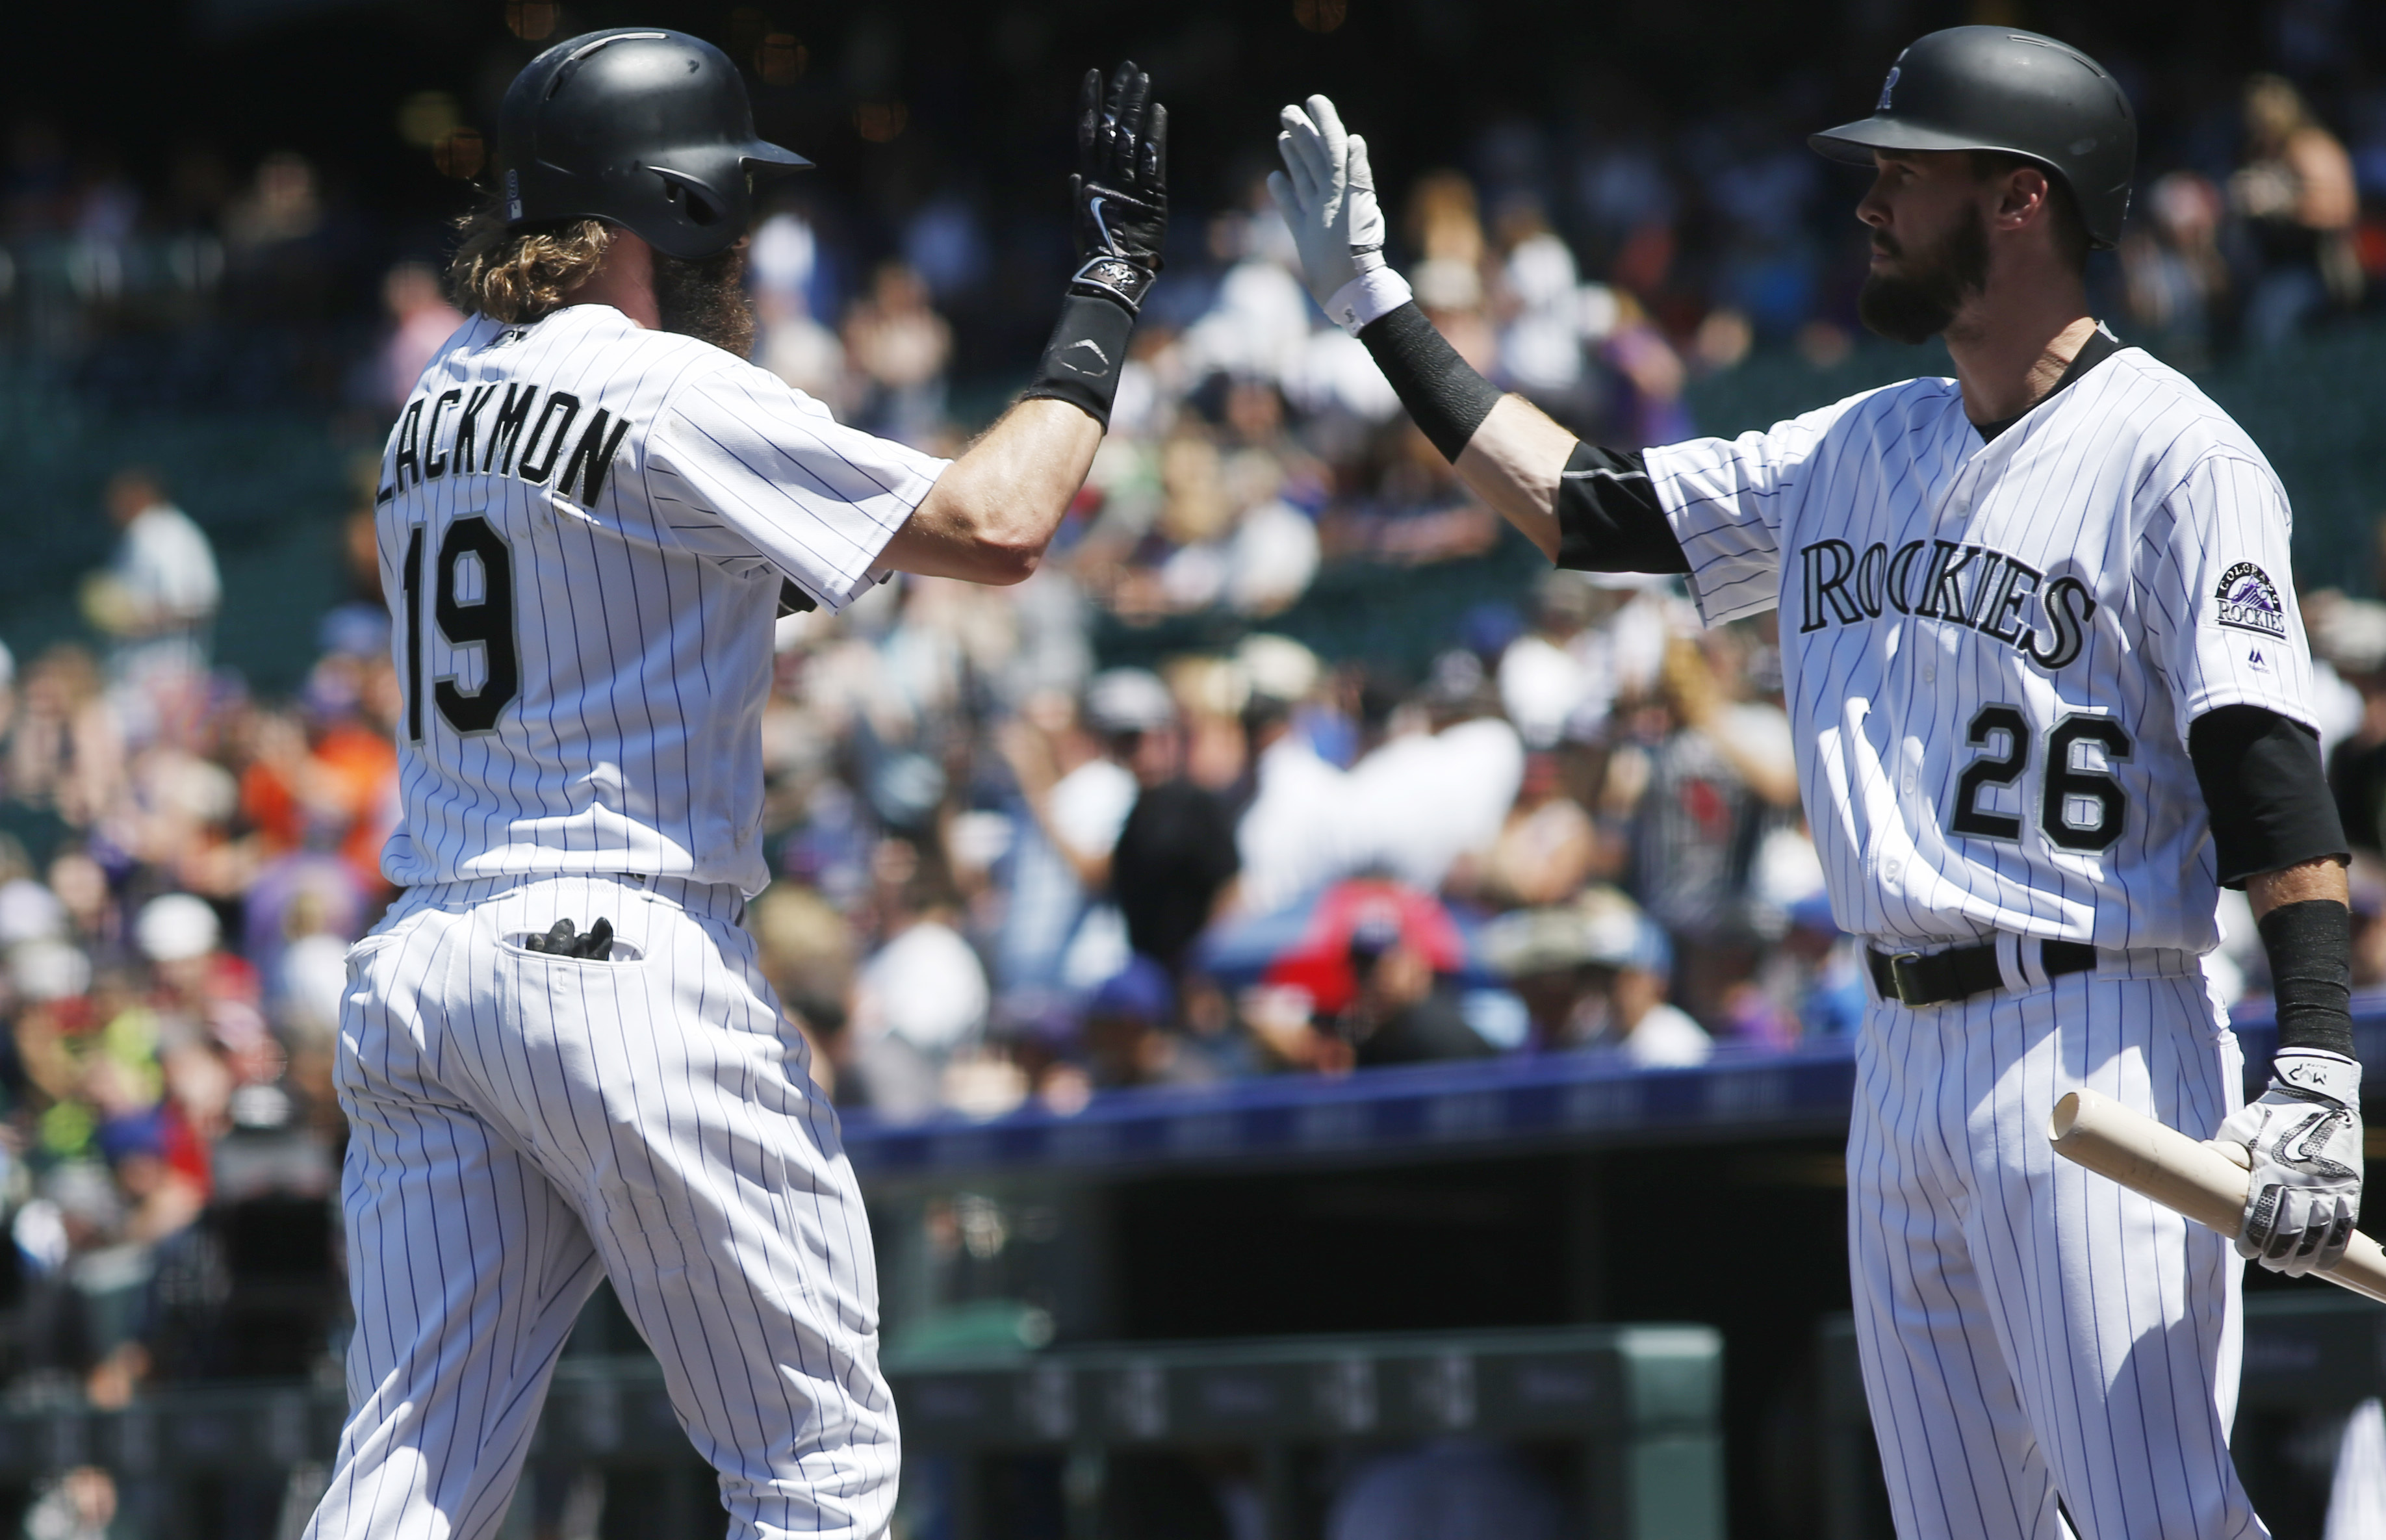 Colorado Rockies' Charlie Blackmon, left, is congratulated by David Dahl after hitting a solo home run off Texas Rangers starting pitcher A.J. Griffin in the first inning of a baseball game Tuesday, Aug. 9, 2016 in Denver. (AP Photo/David Zalubowski)